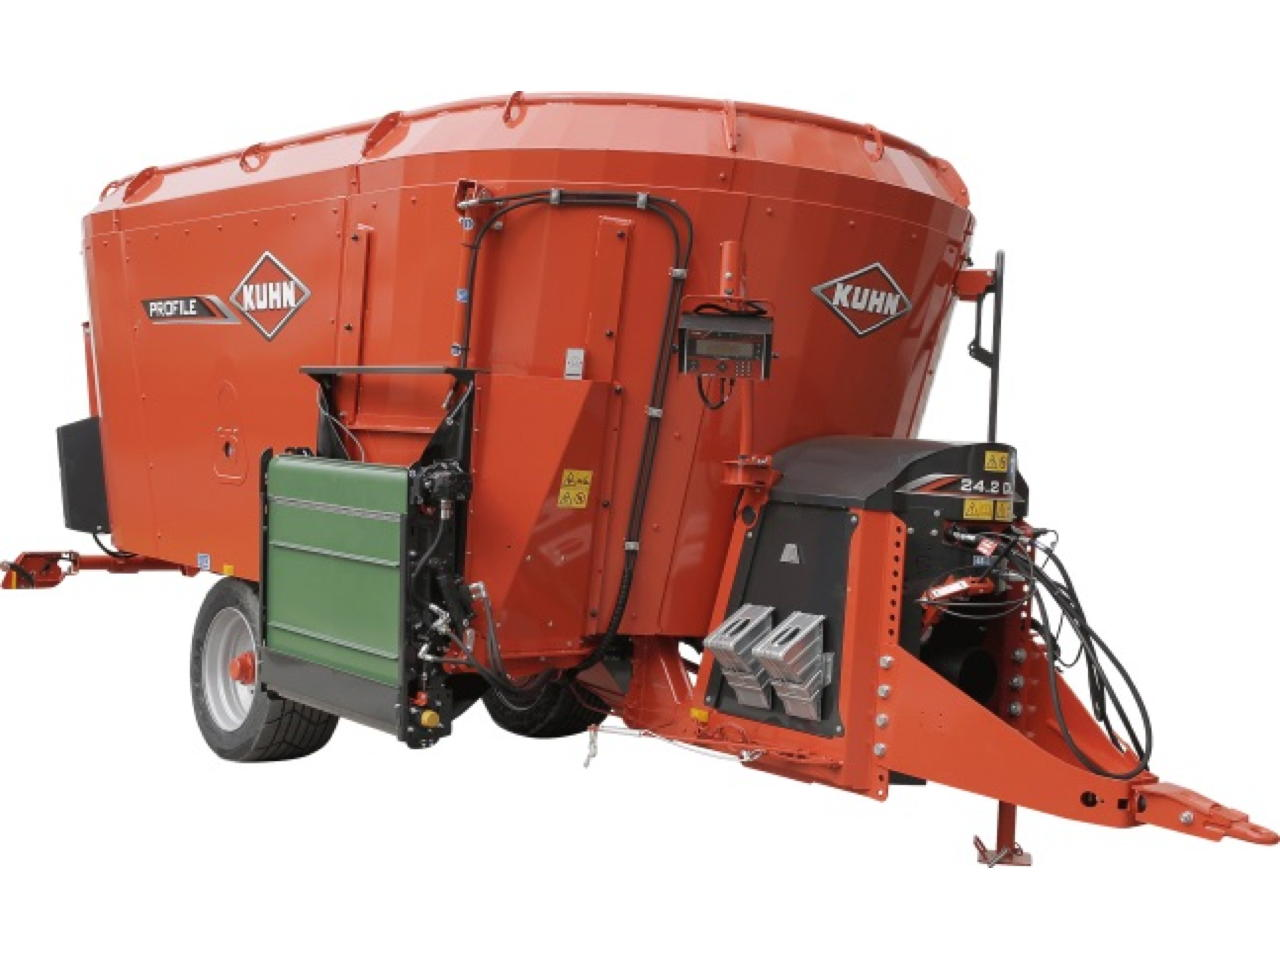 Kuhn Profile 2 DL Profile 22.2 DL